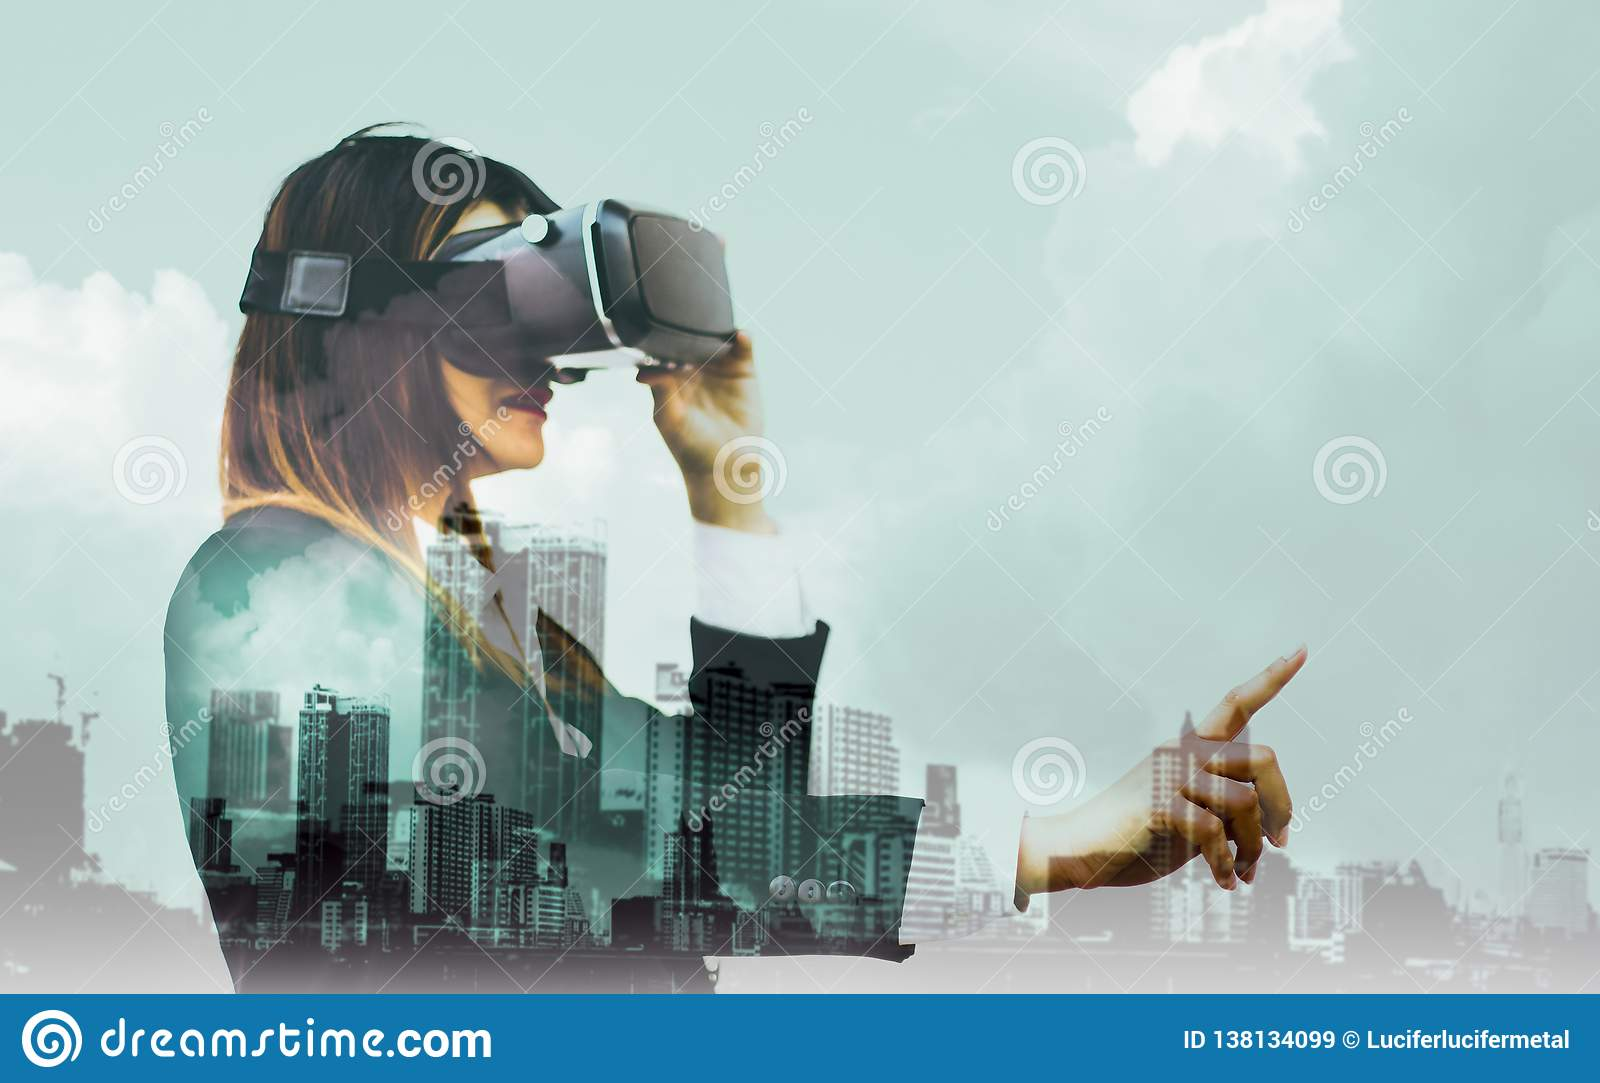 Double Exposure-Future VR Headsets,women Business In Suits